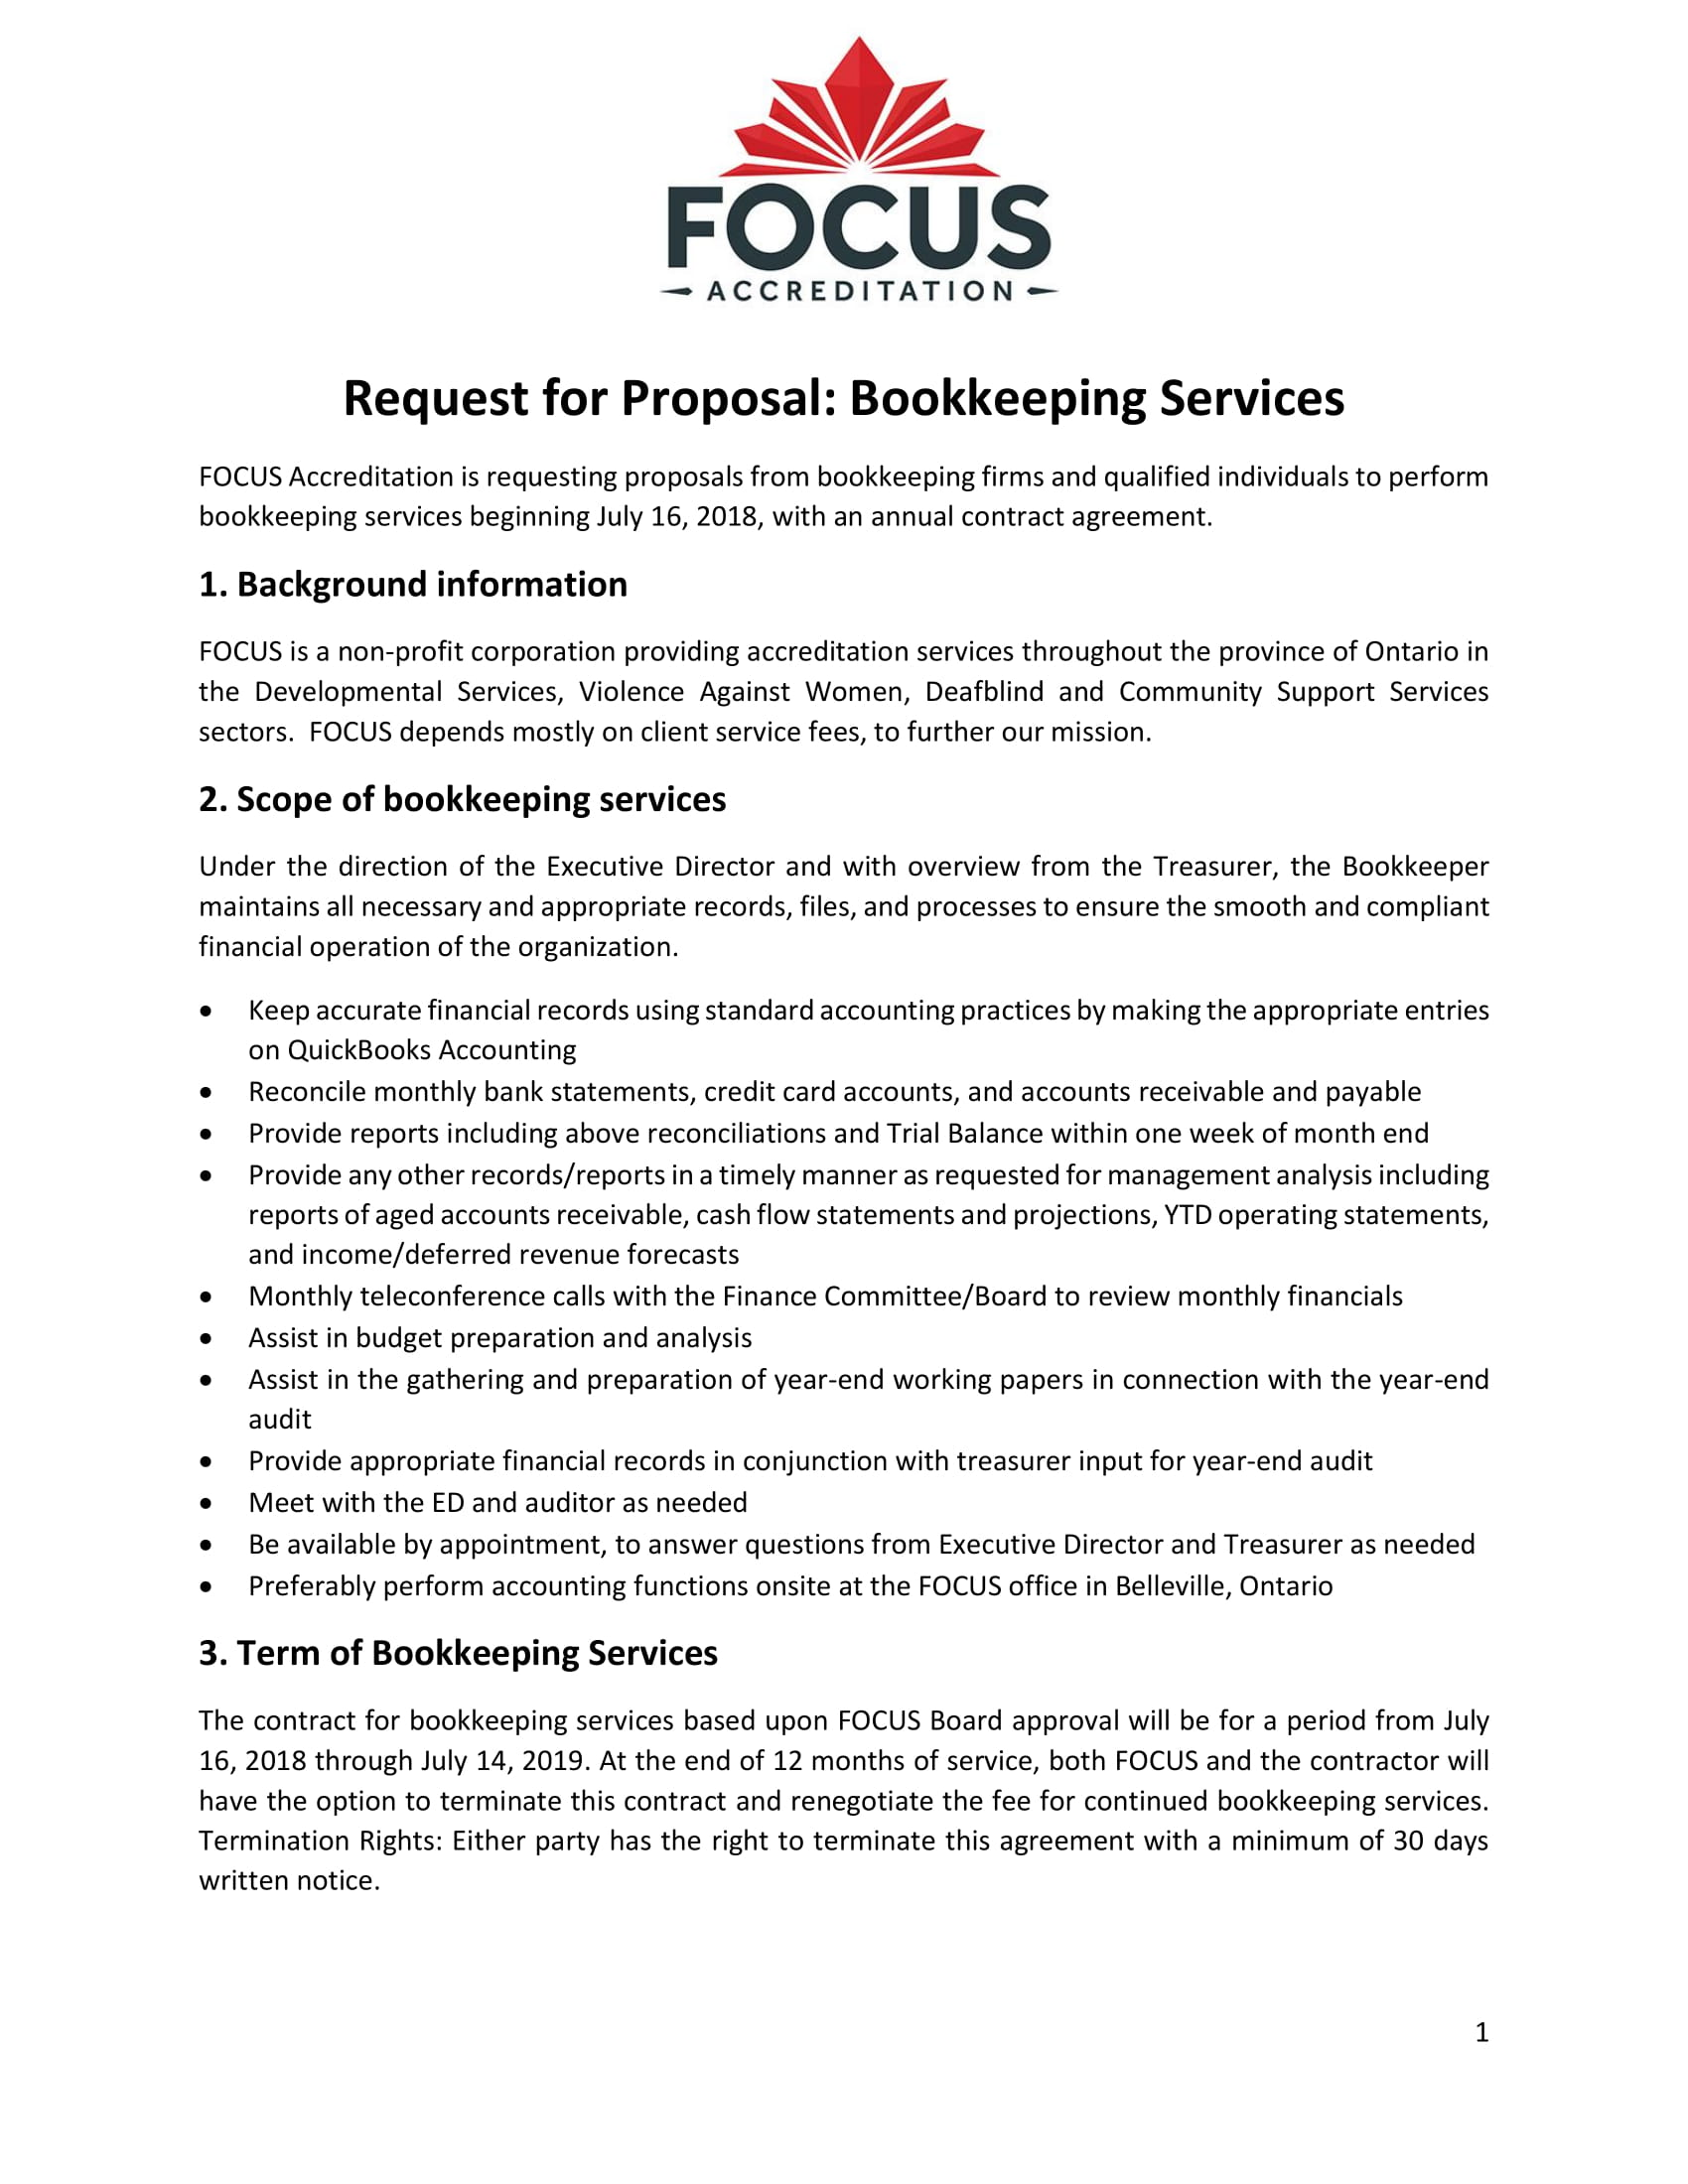 focus request for proposal bookkeeping services